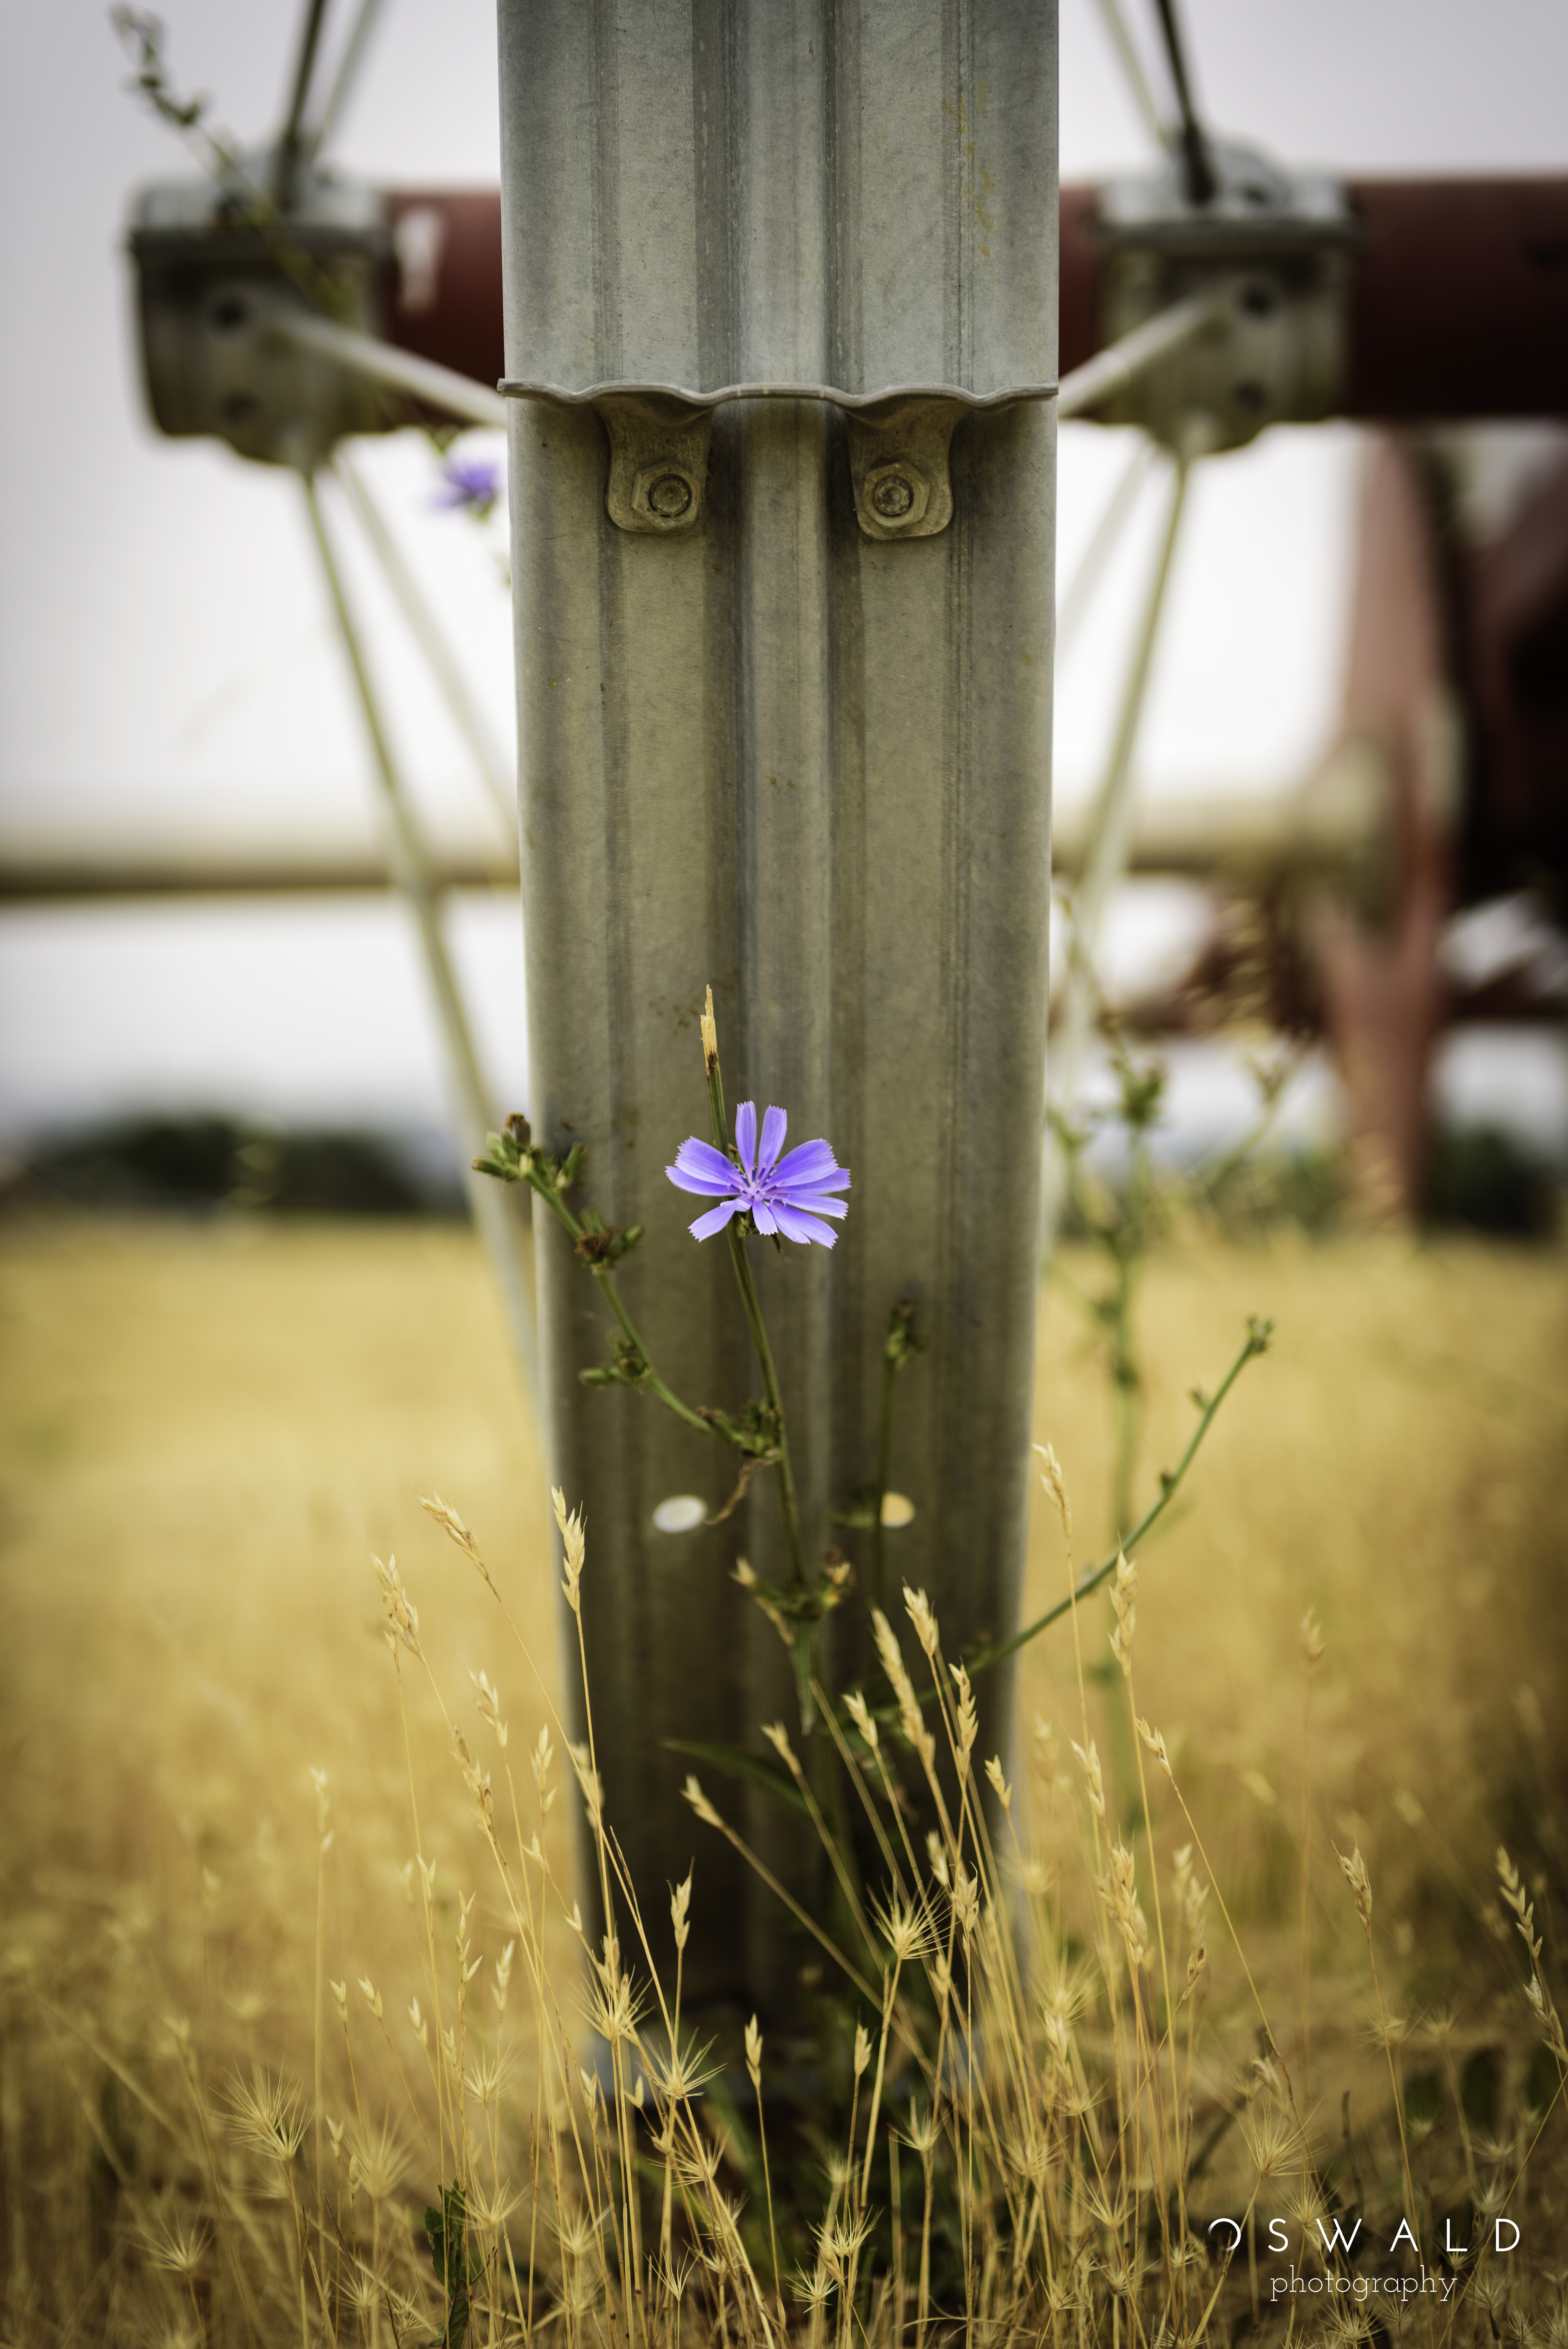 A purple flower shoots upright just beneath one of the steel wheels of an old farmland irrigation system.